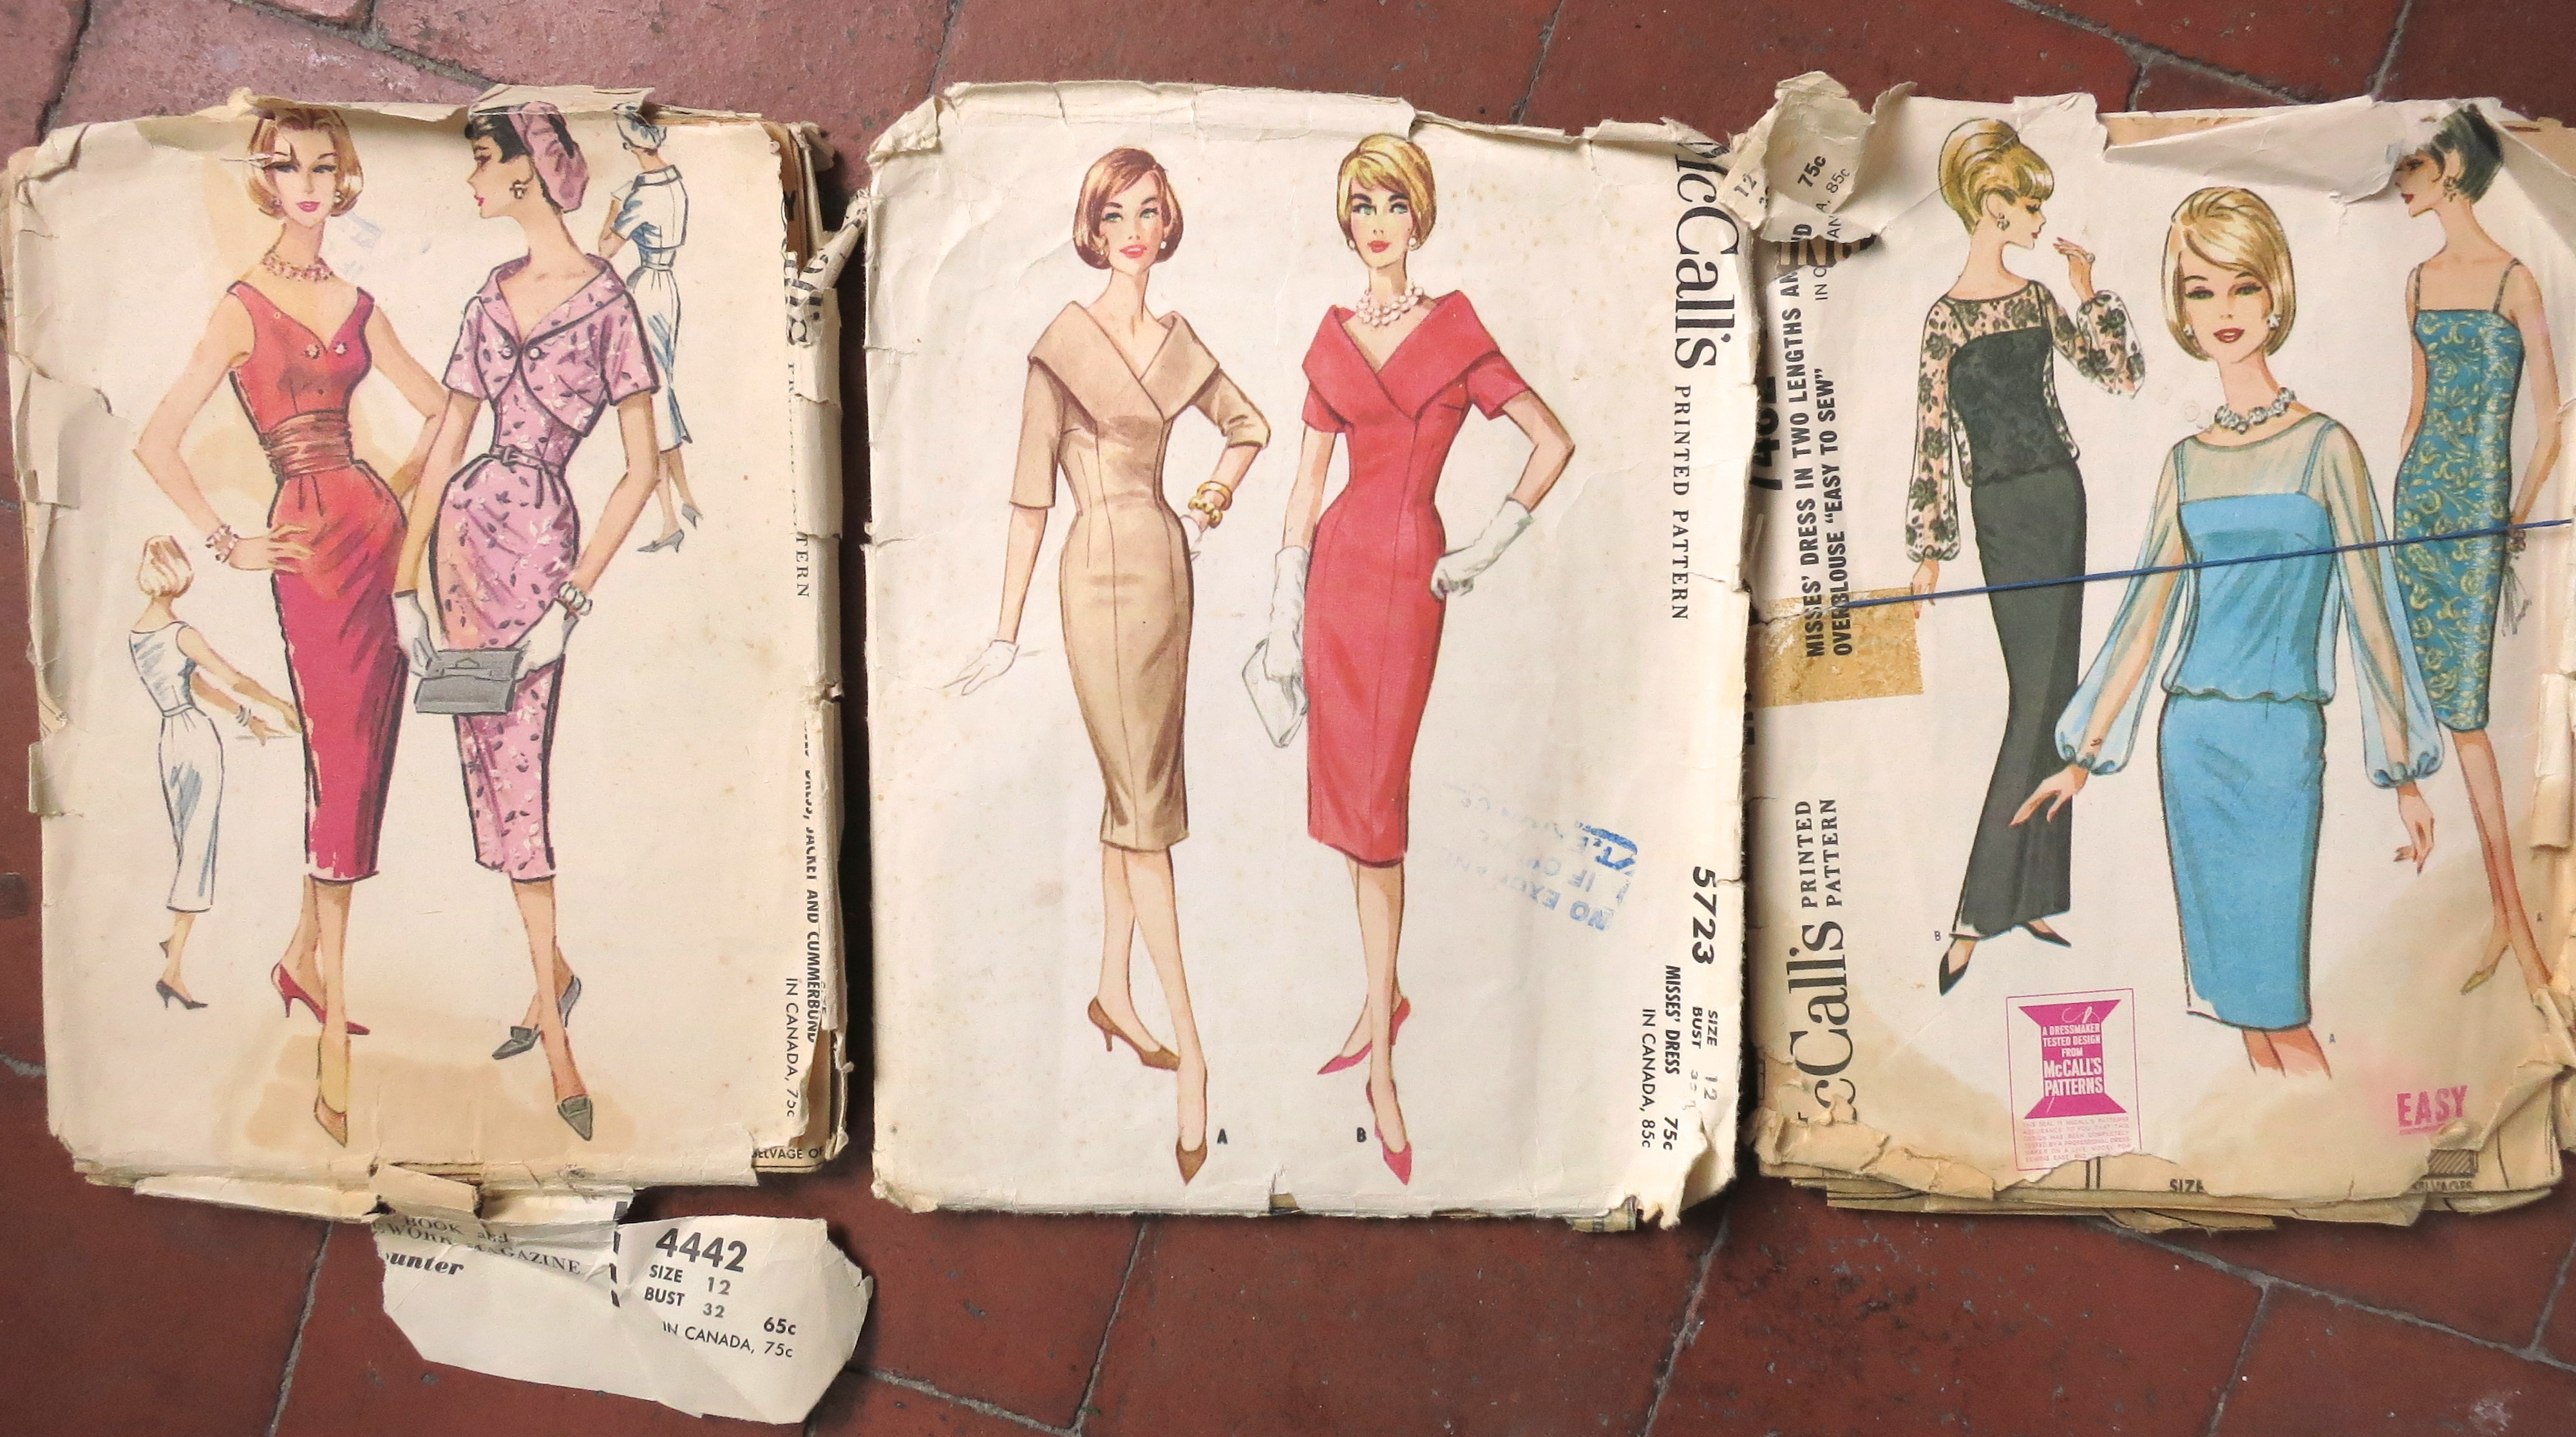 Late 1950s/Early 1960s Dress Patterns: McCall's 4442, 5723 and 7482.